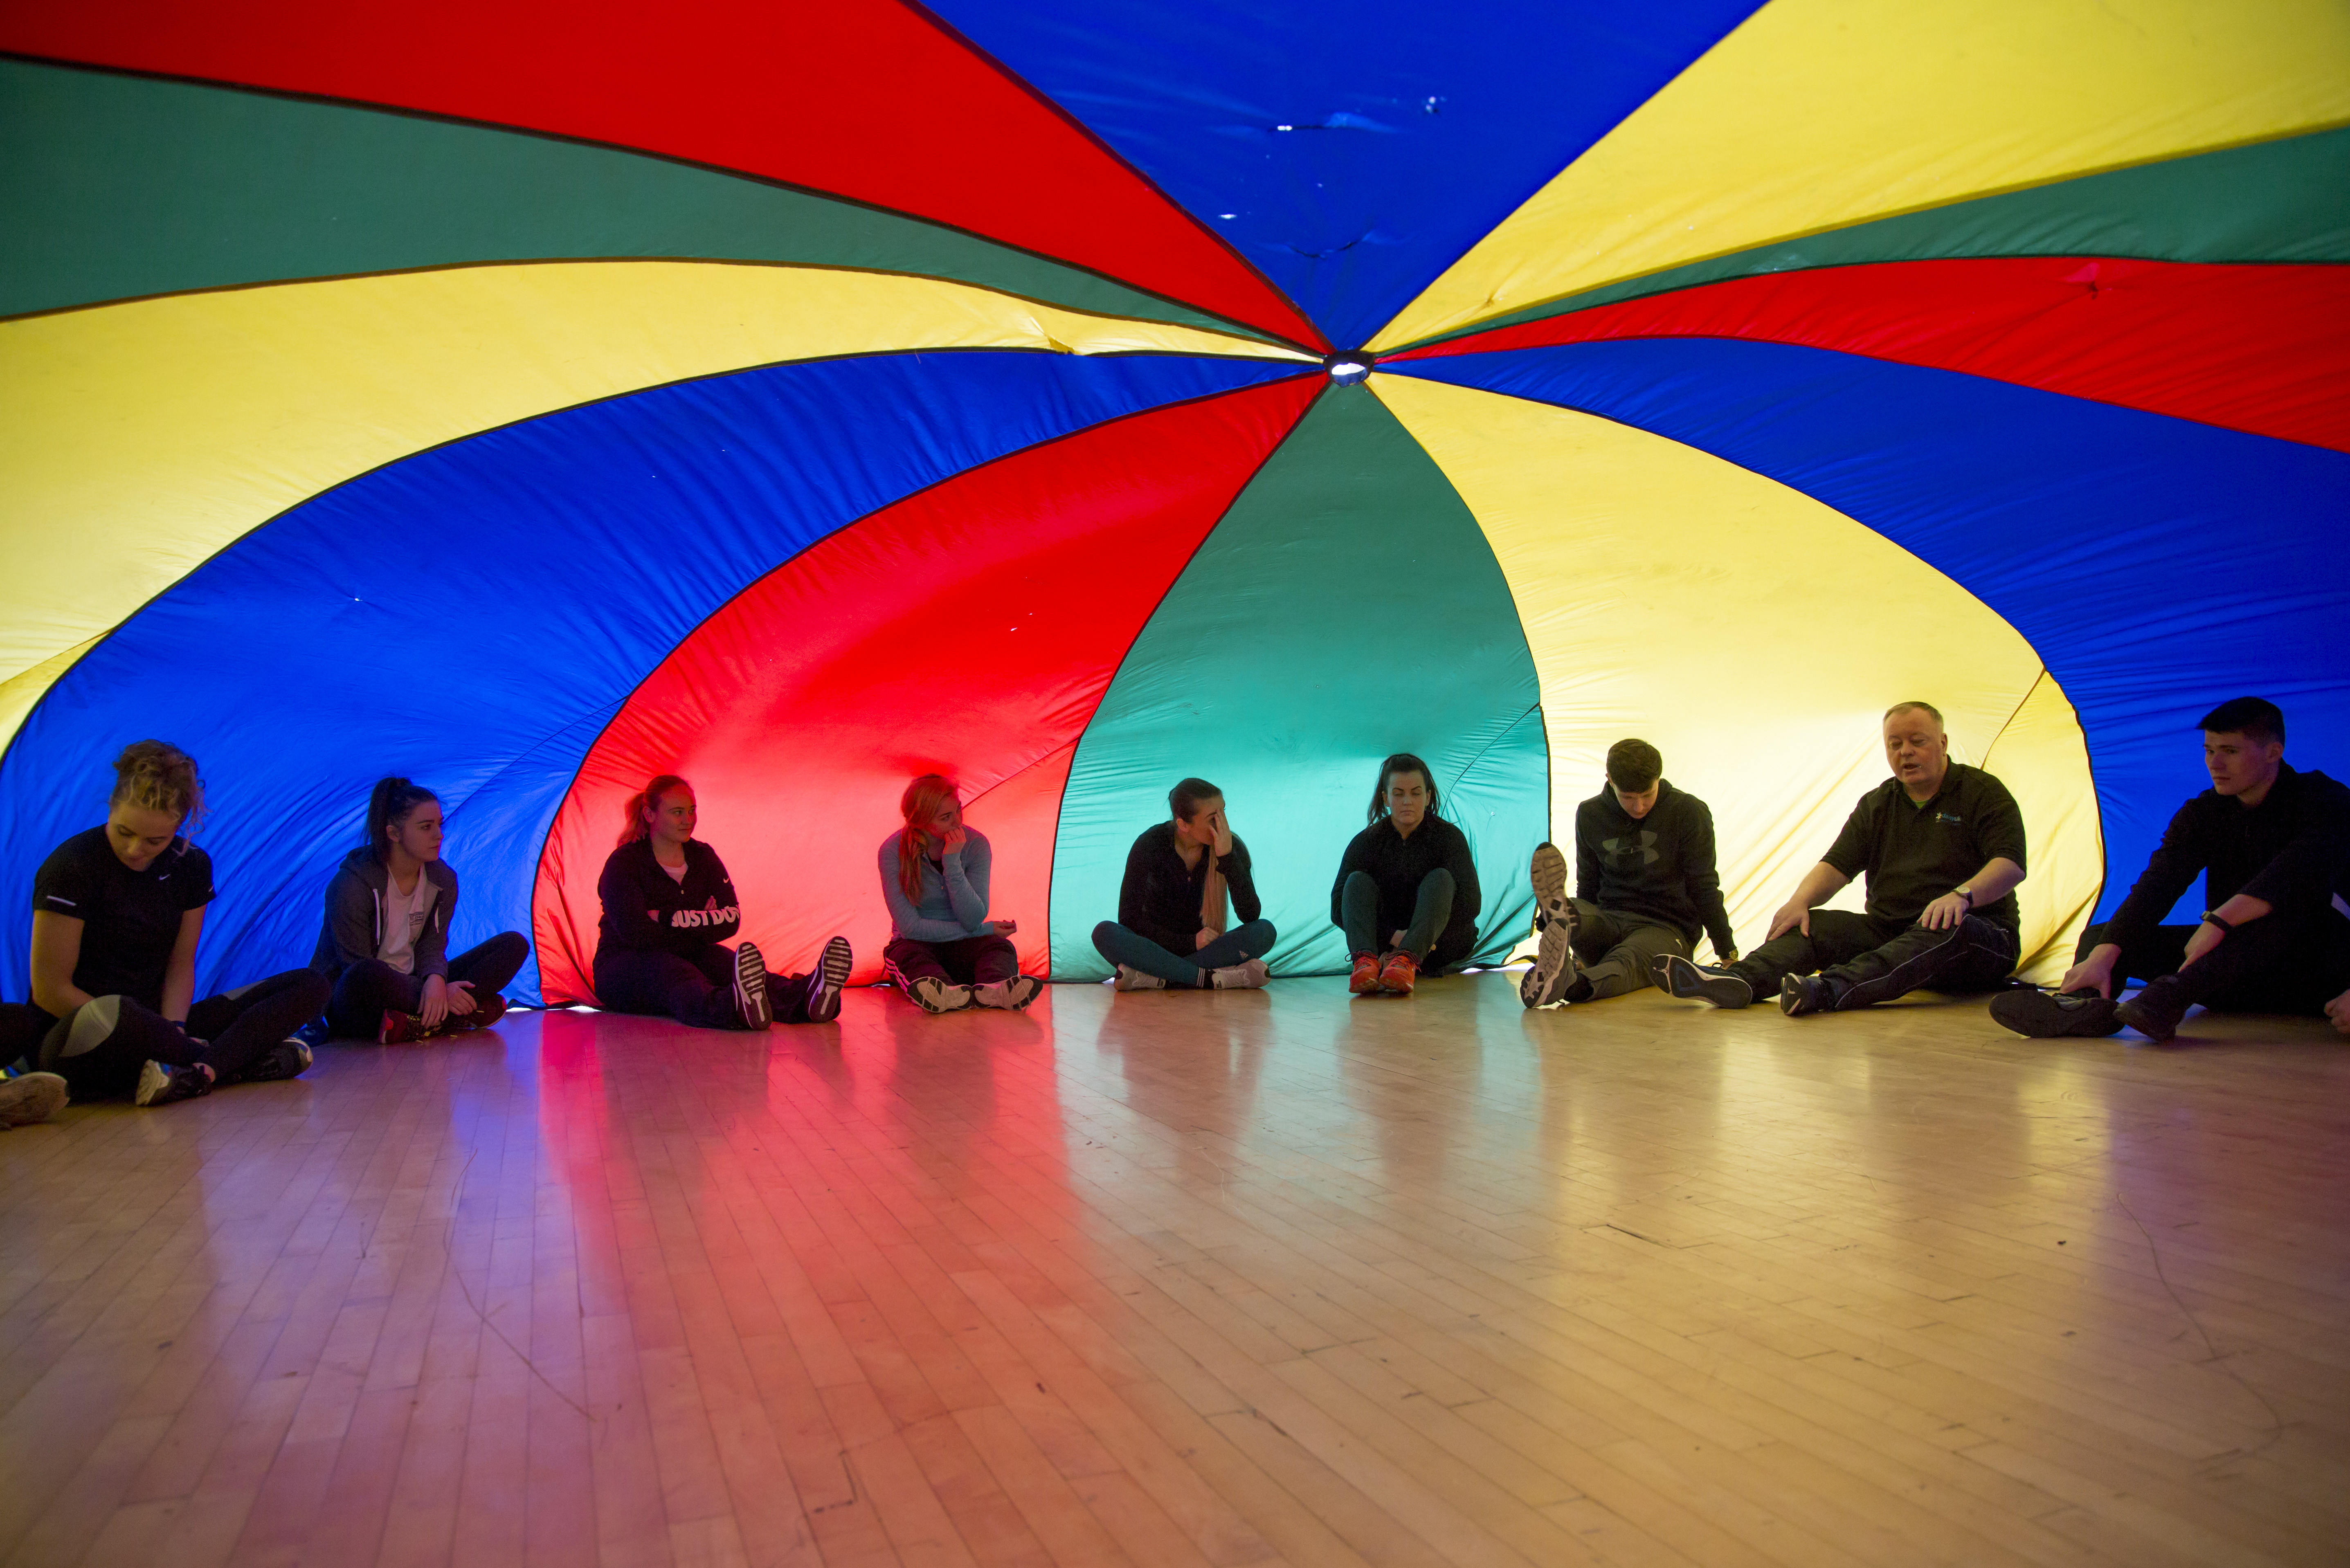 Image of people sitting under colourful dome